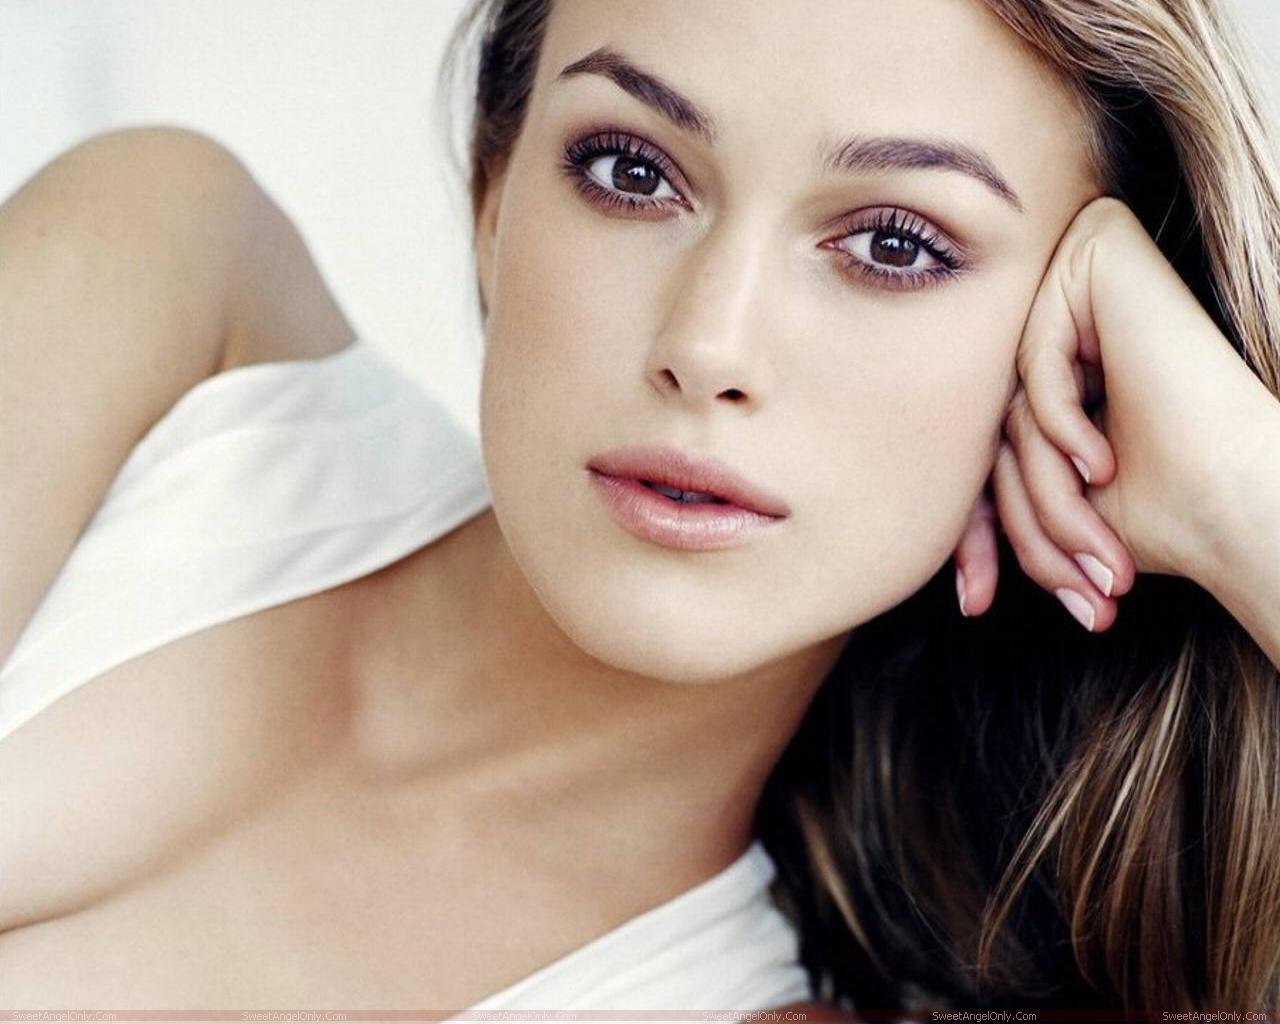 http://4.bp.blogspot.com/-31fm2lw4KKA/TXhqnmoXfgI/AAAAAAAAFOA/8XArnemSfYg/s1600/actress_keira_knightley_hot_wallpaper_sweetangelonly_12.jpg